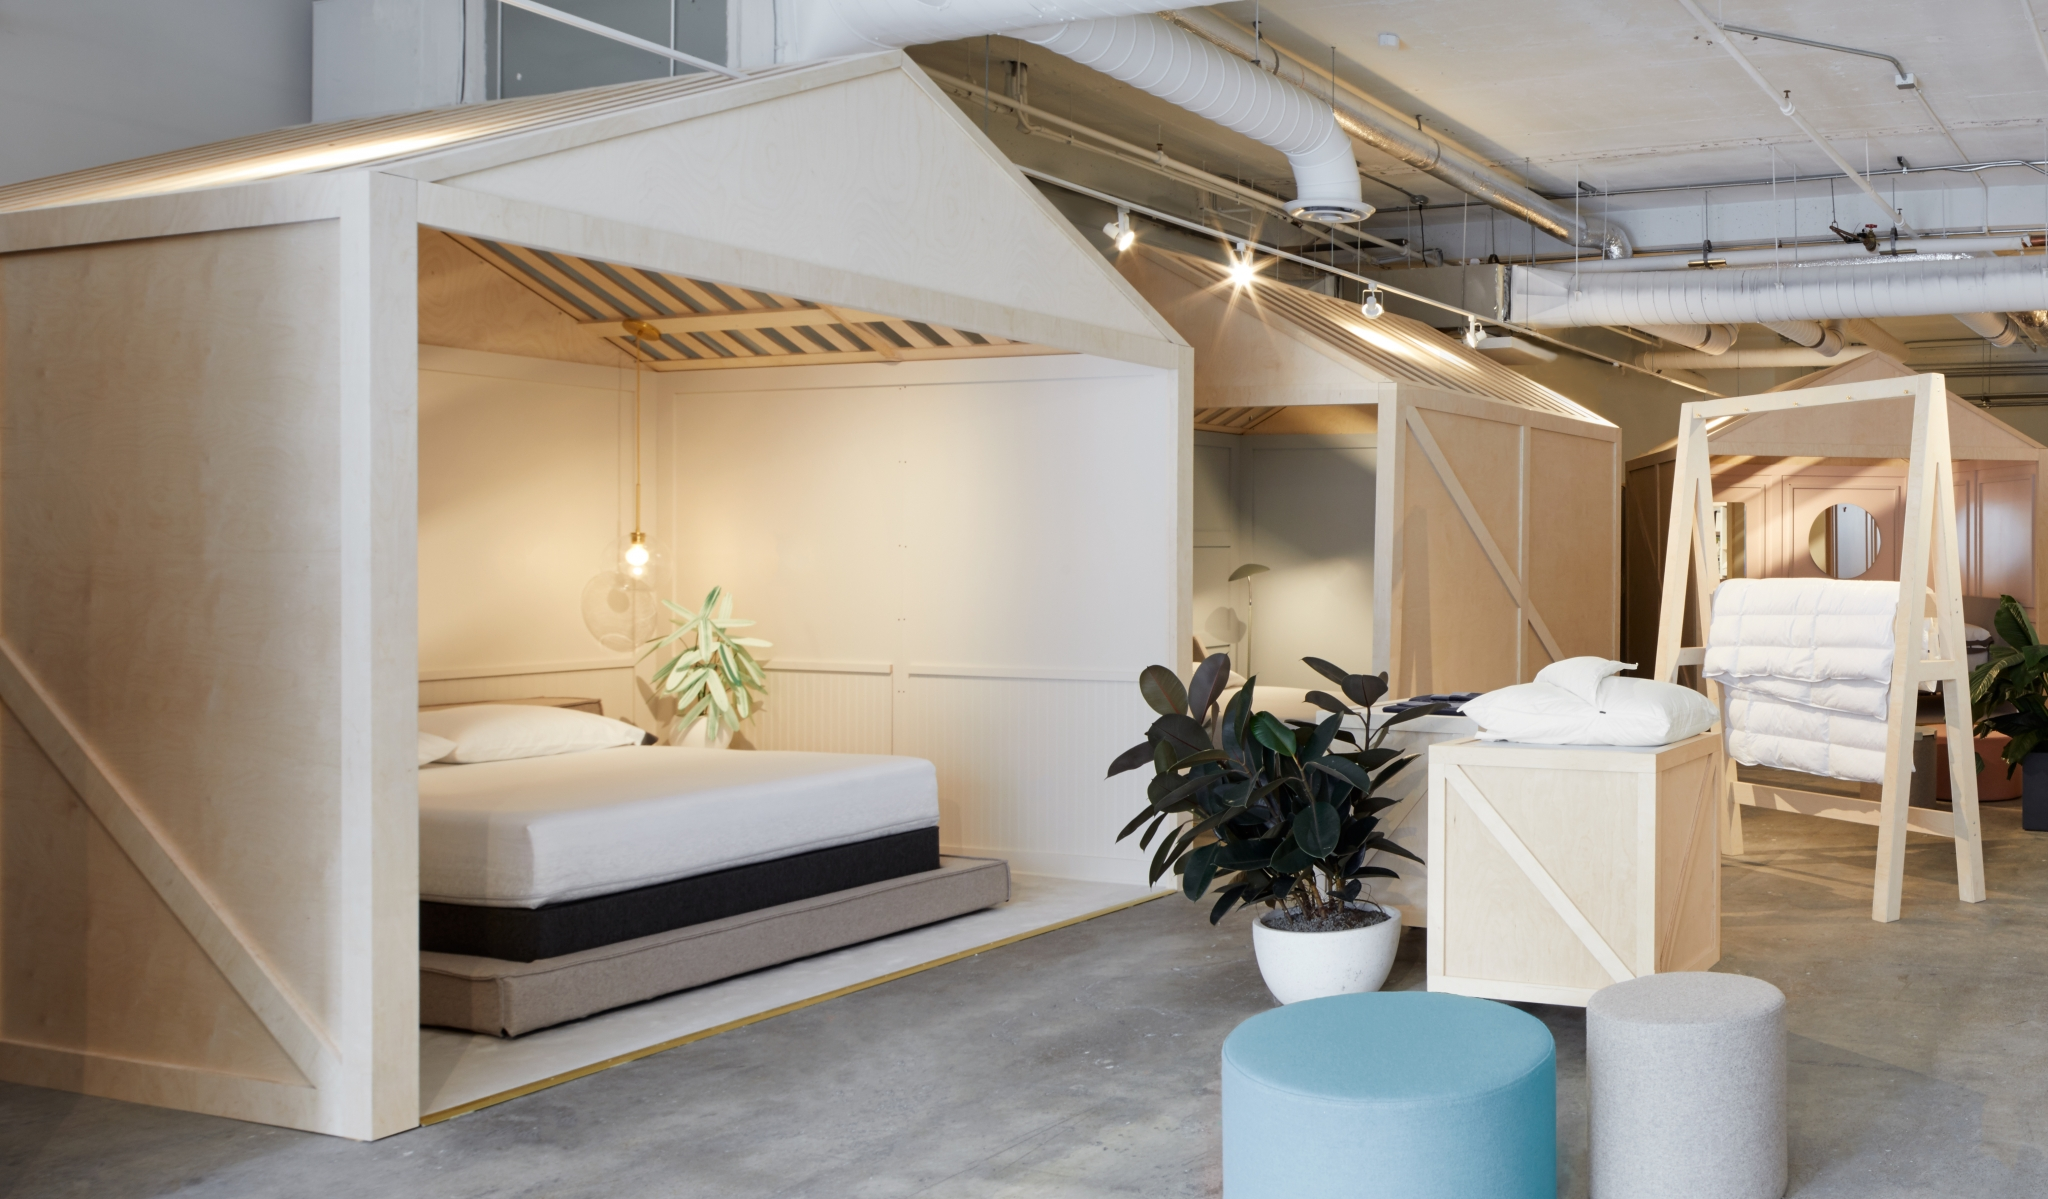 Casper Opens New Concept Mattress Shop In The Galleria